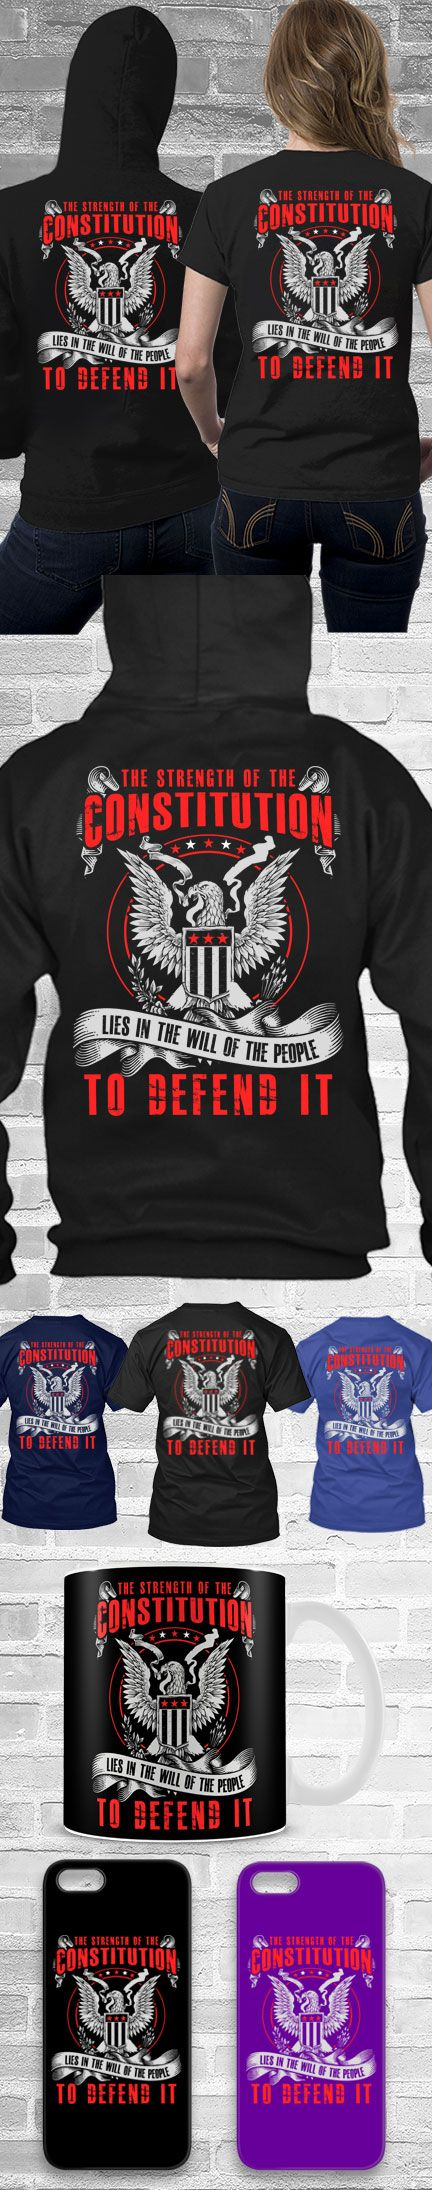 The Strength Of The Constitution! Click The Image To Buy It Now or Tag Someone You Want To Buy This For.  #secondamendment